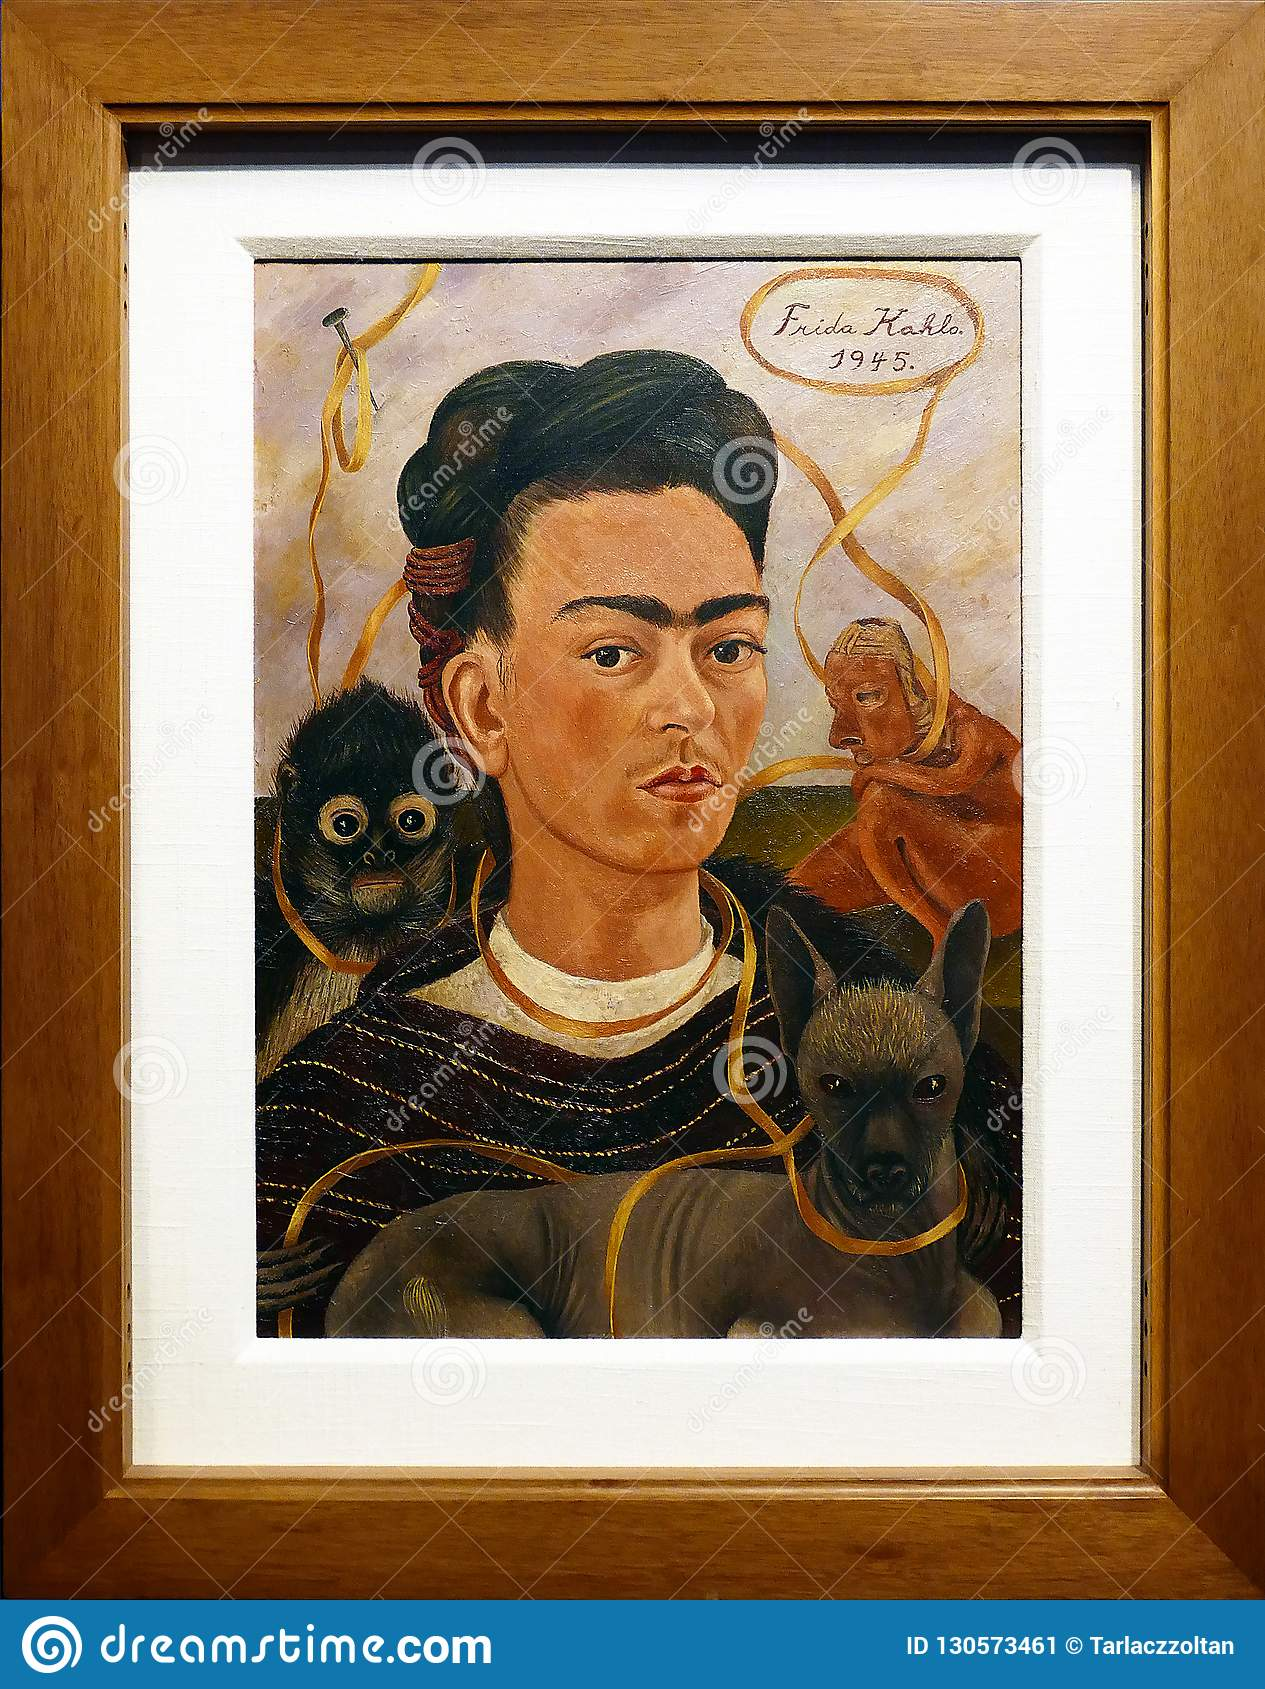 Frida Kahlo - Self Portrait with Monkey and Parrot, 1942